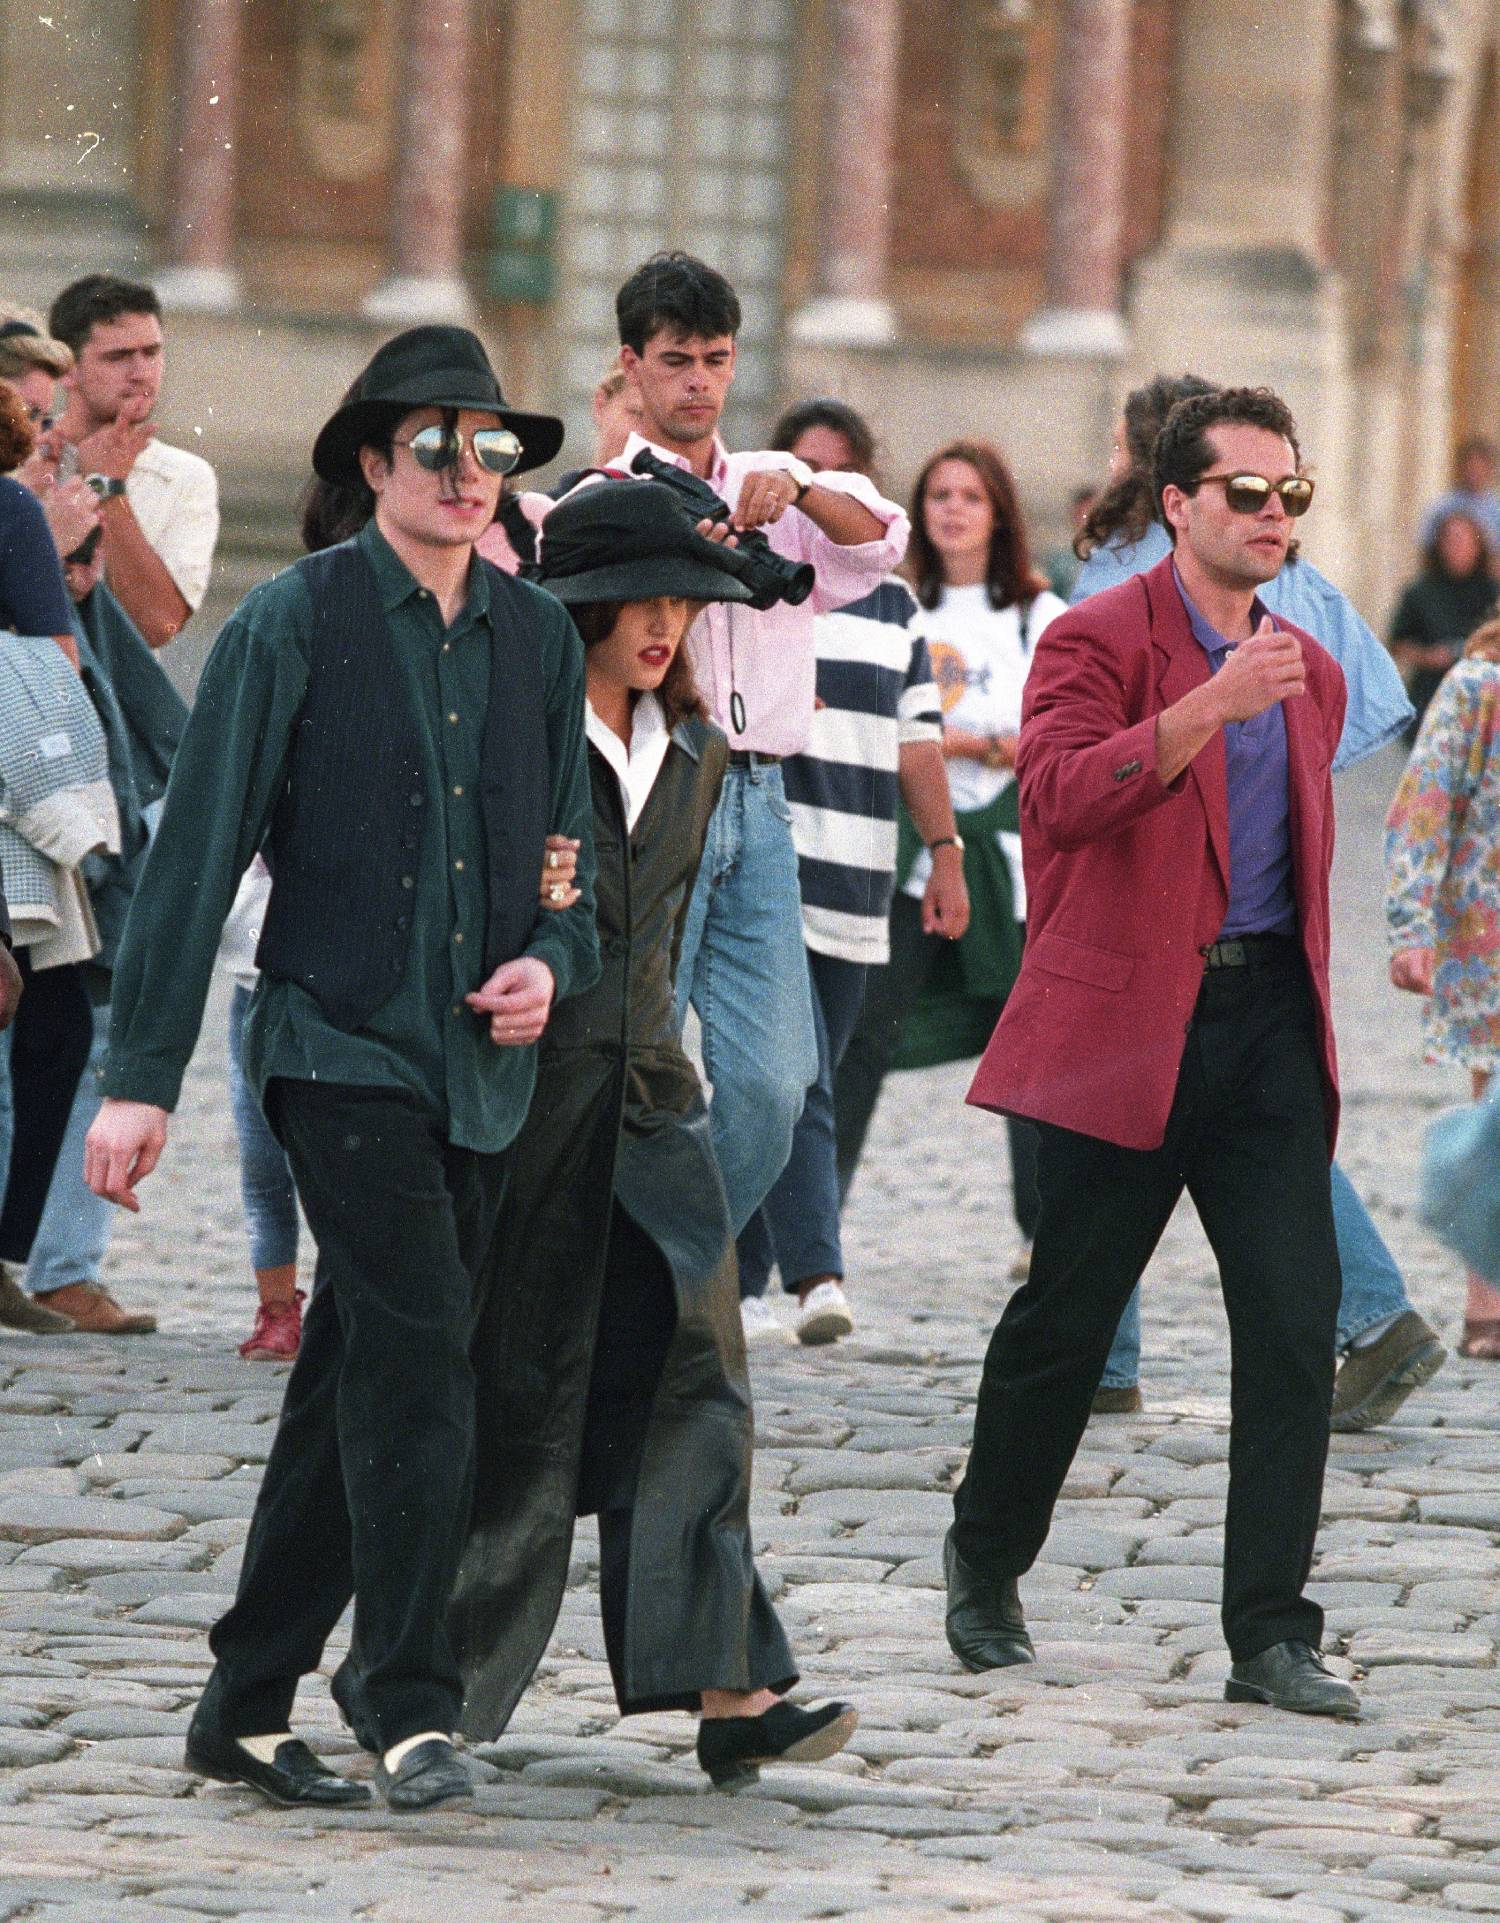 Michael Jackson and wife Lisa Marie Presley in 1995 at Versailles, France.